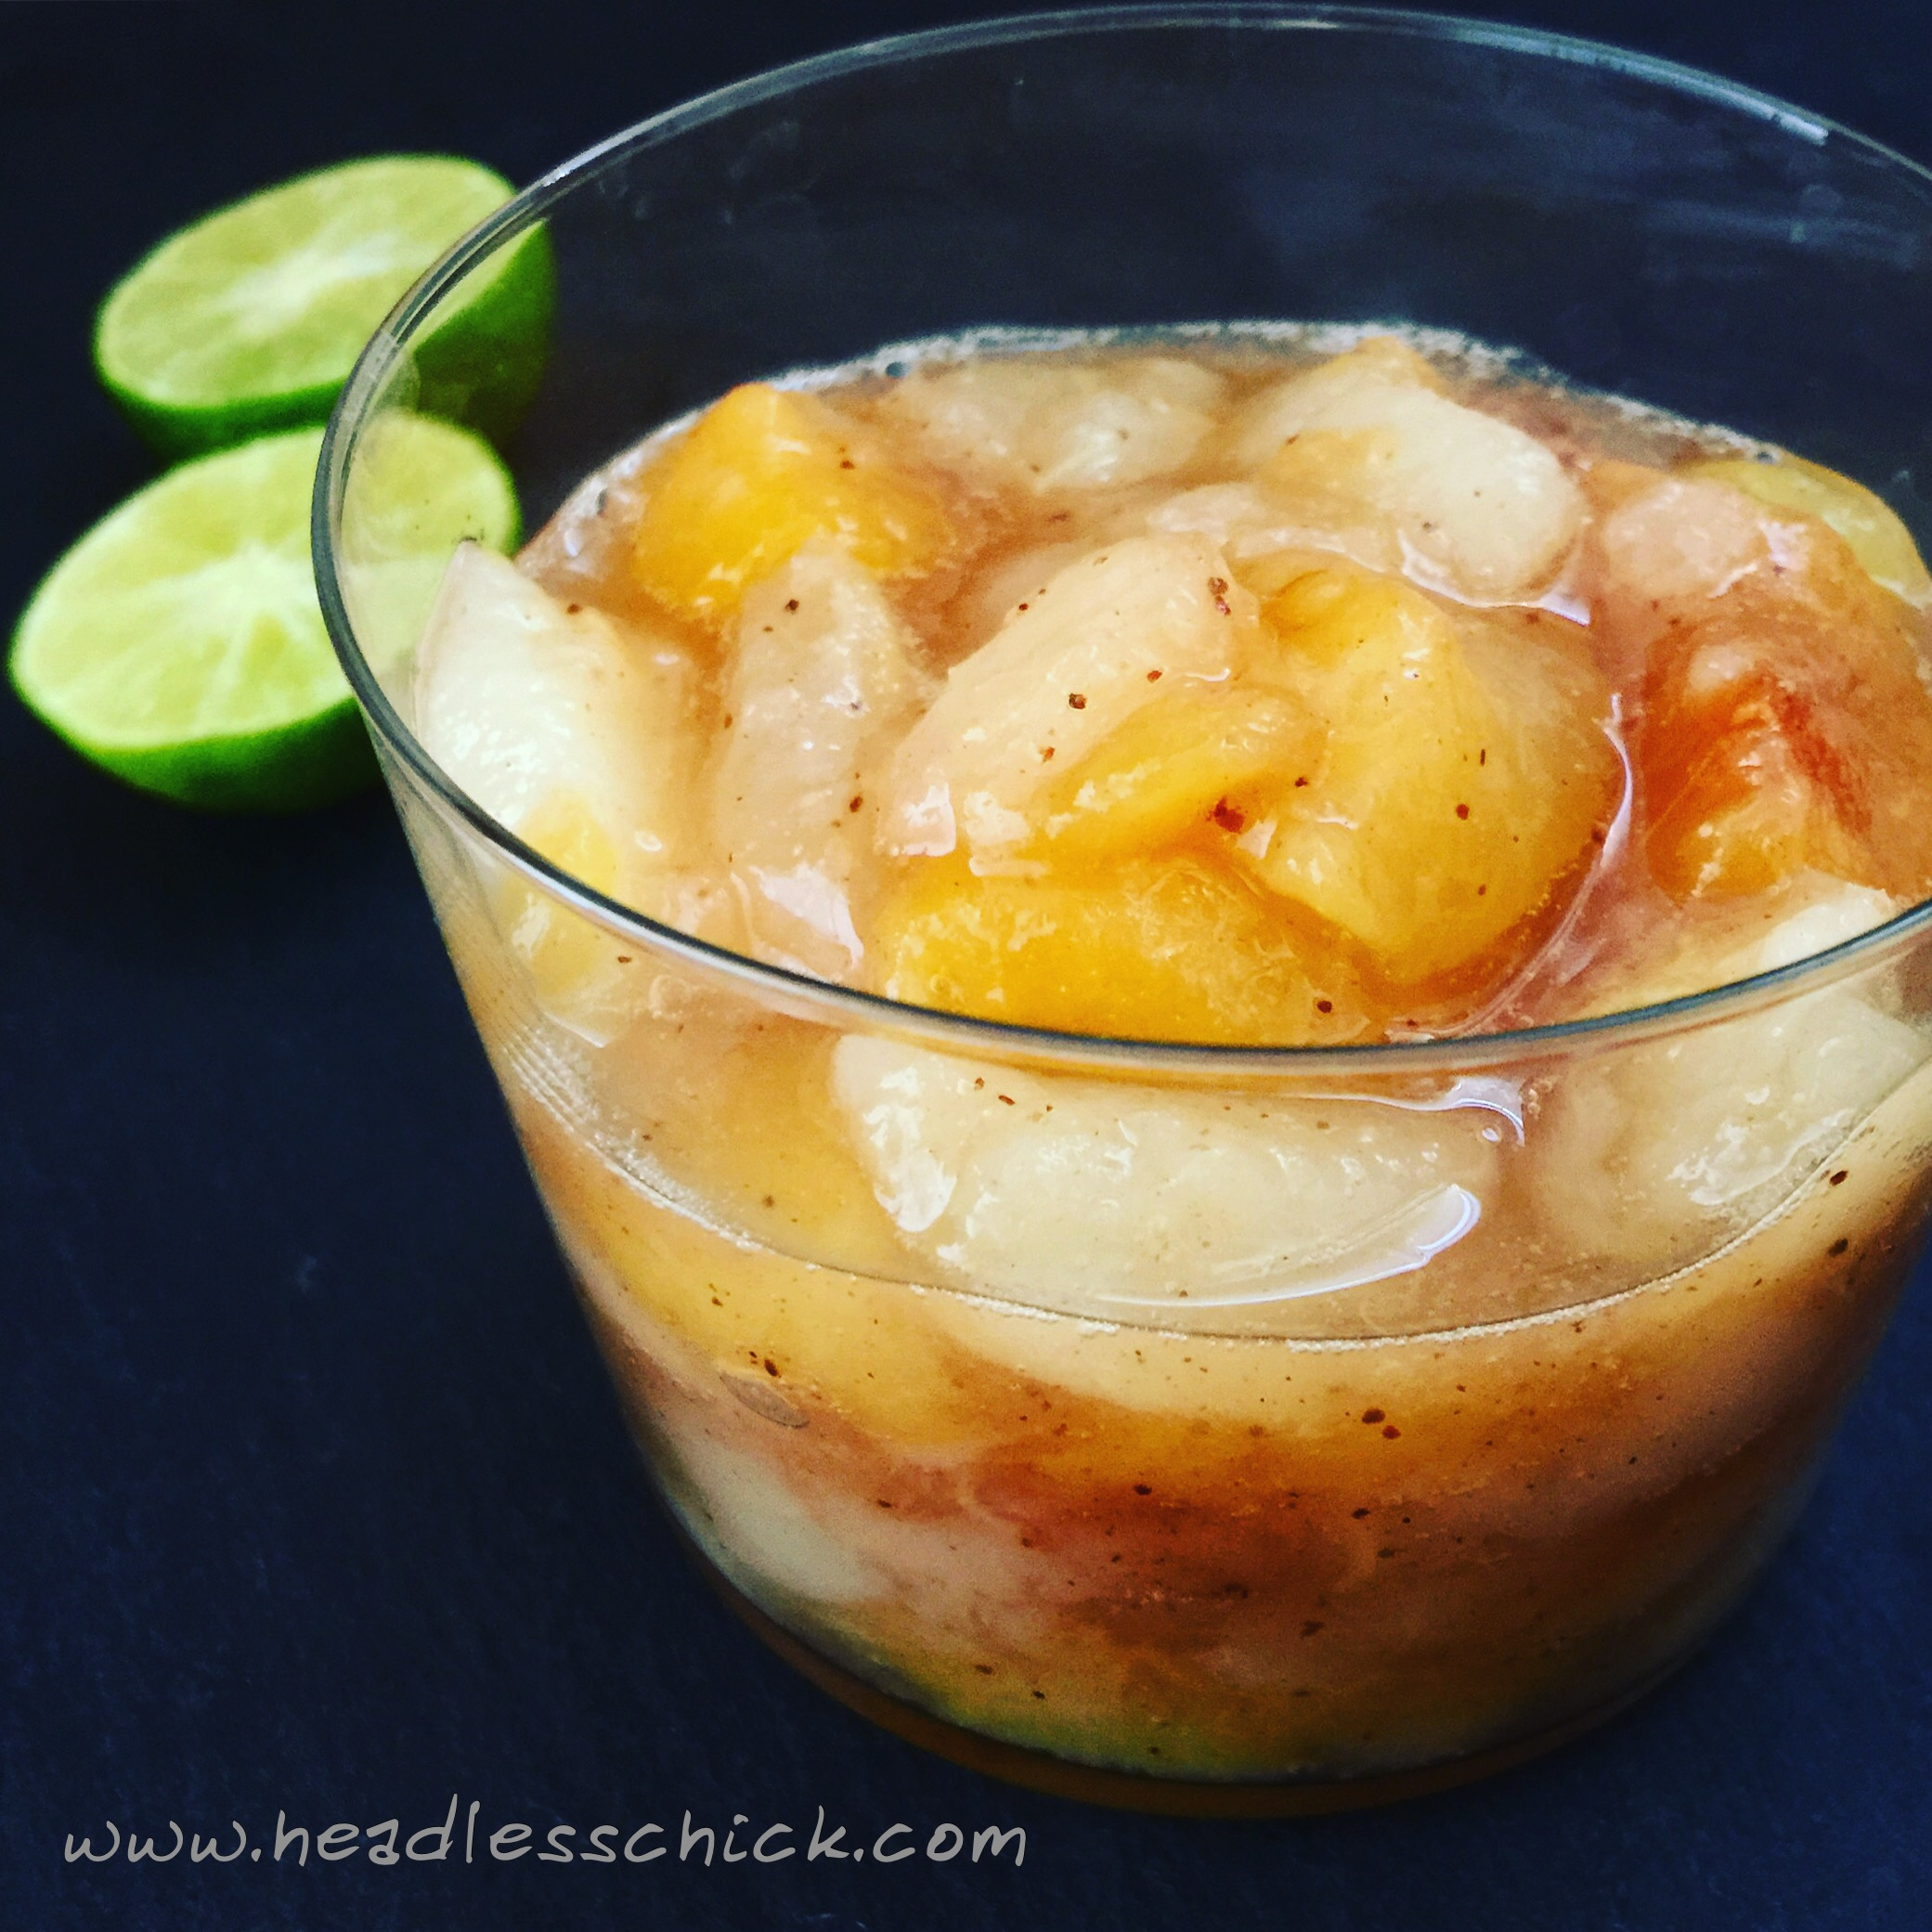 Four Spices Pear and Plum Compote